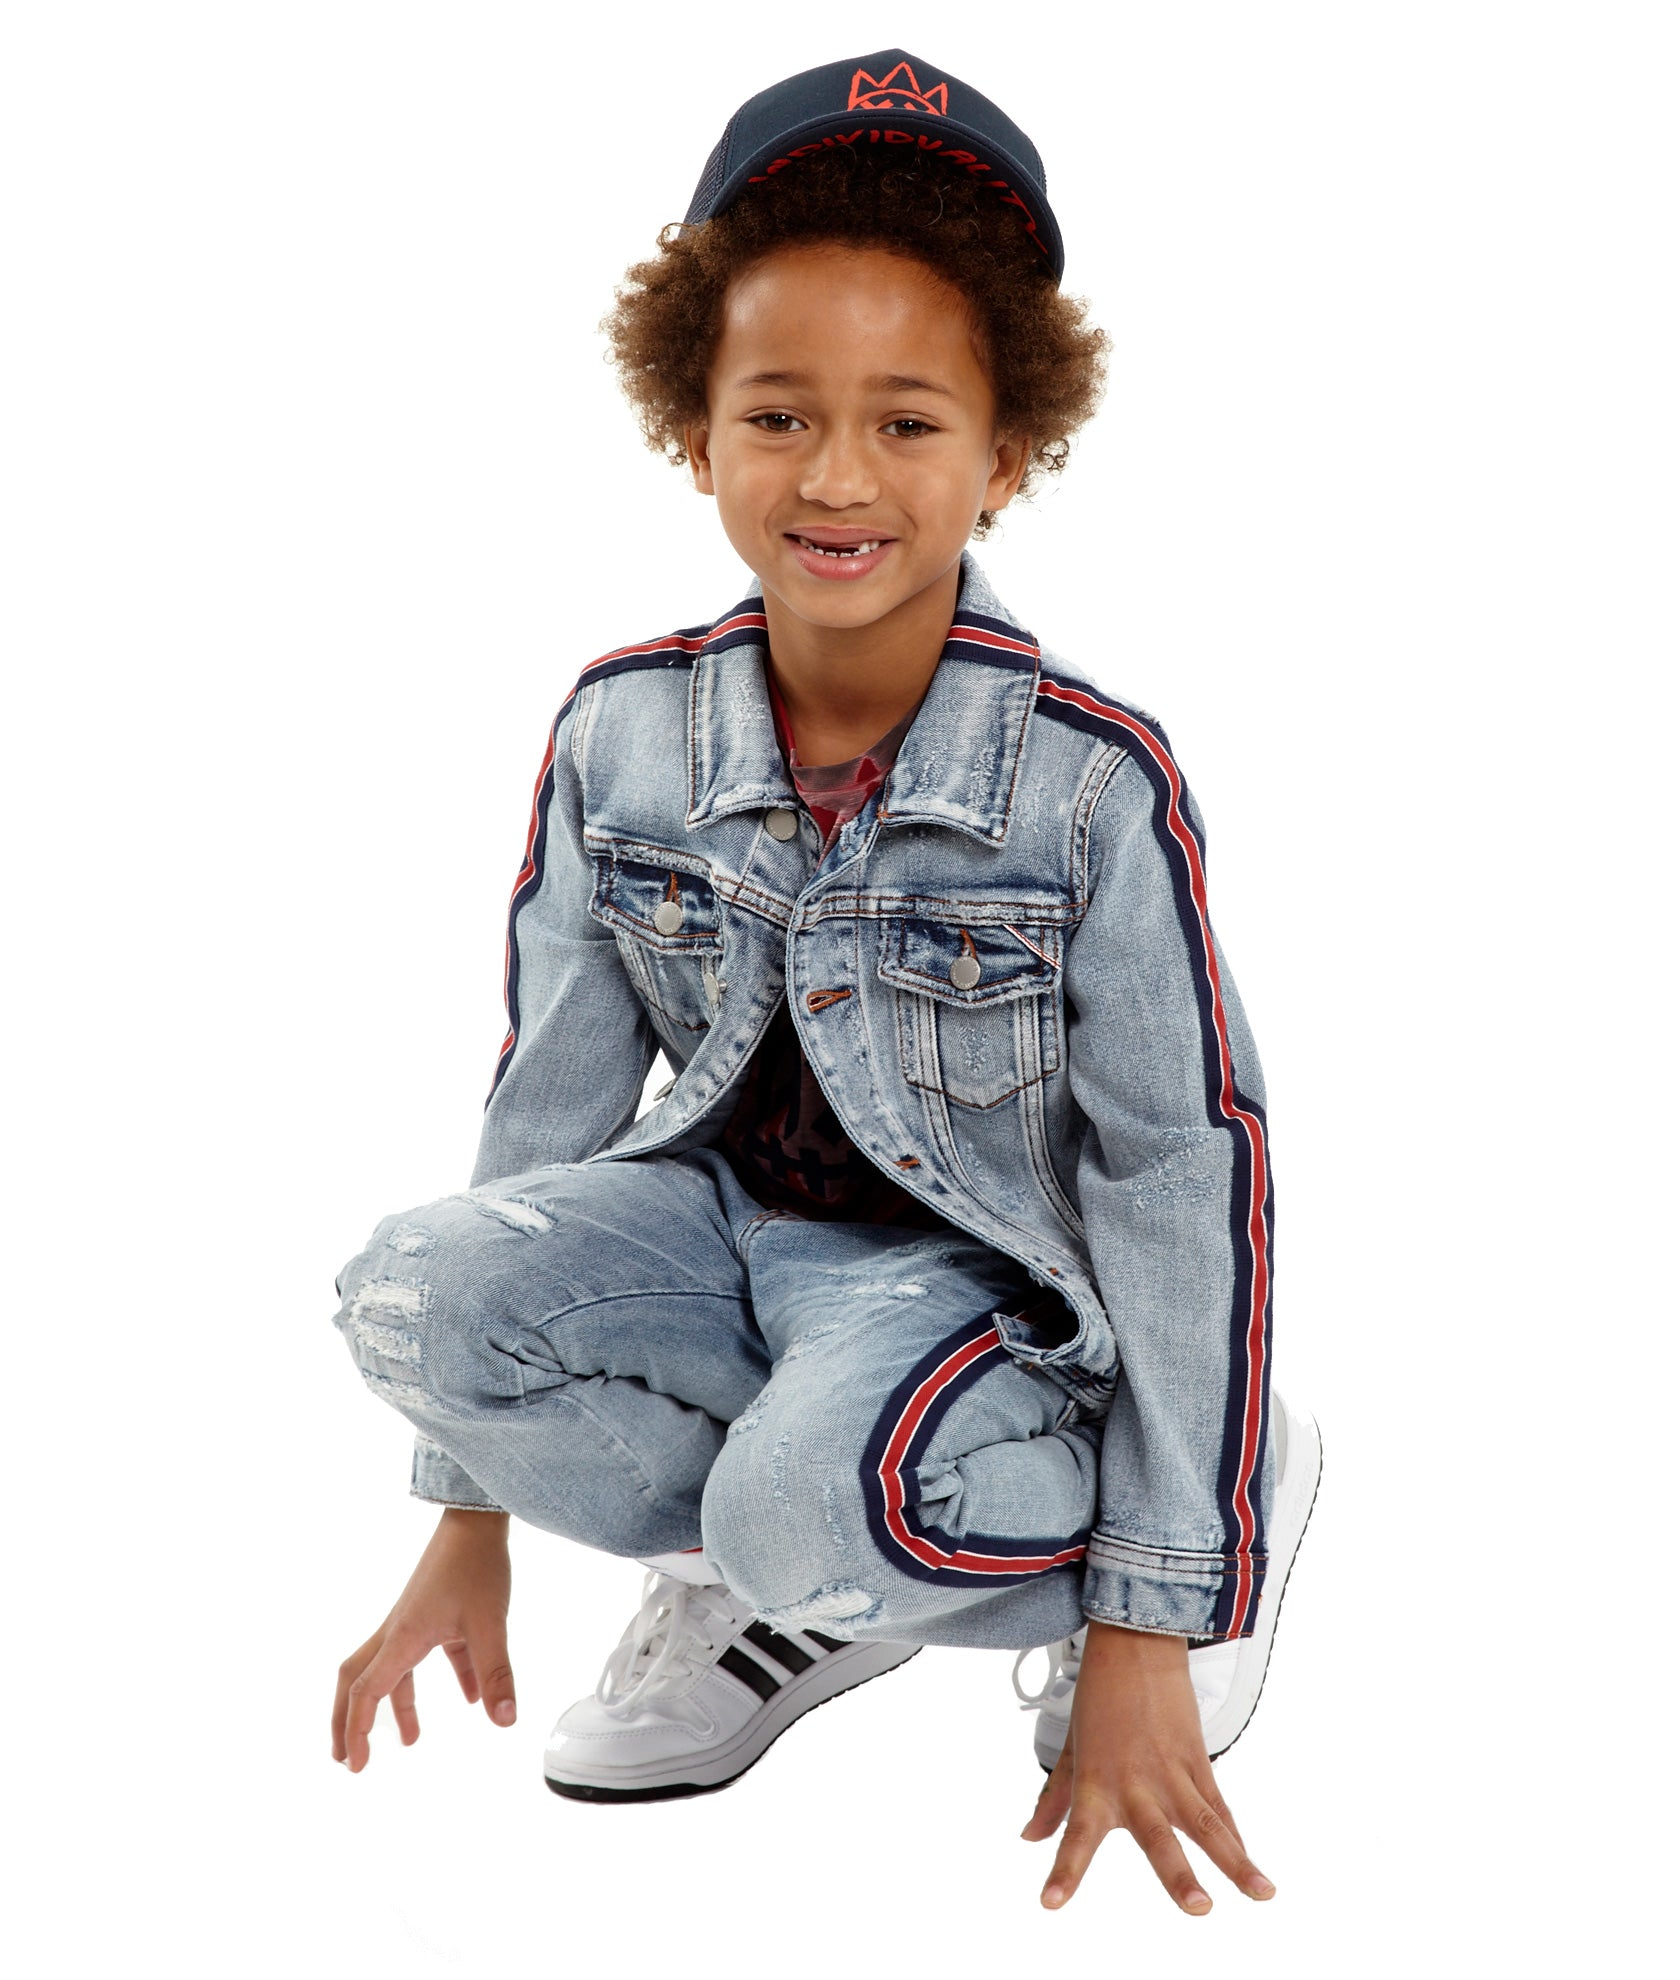 Kid's Stripe Denim Jacket in Kinevil${product_sku}